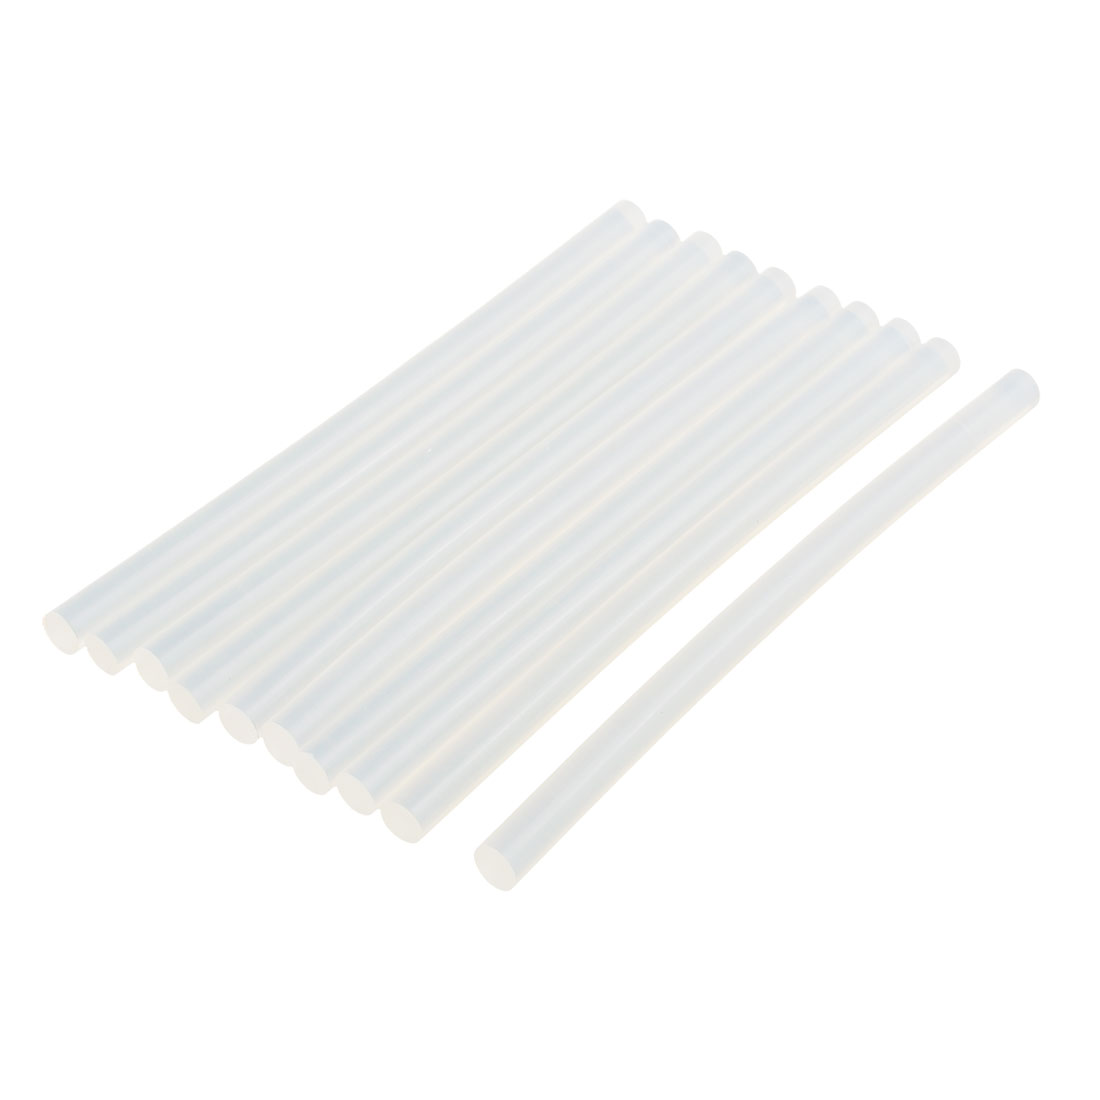 10 Pcs 11mm x 200mm Hot Melt Glue Adhesive Stick Clear for Electric Tool Heating Gun